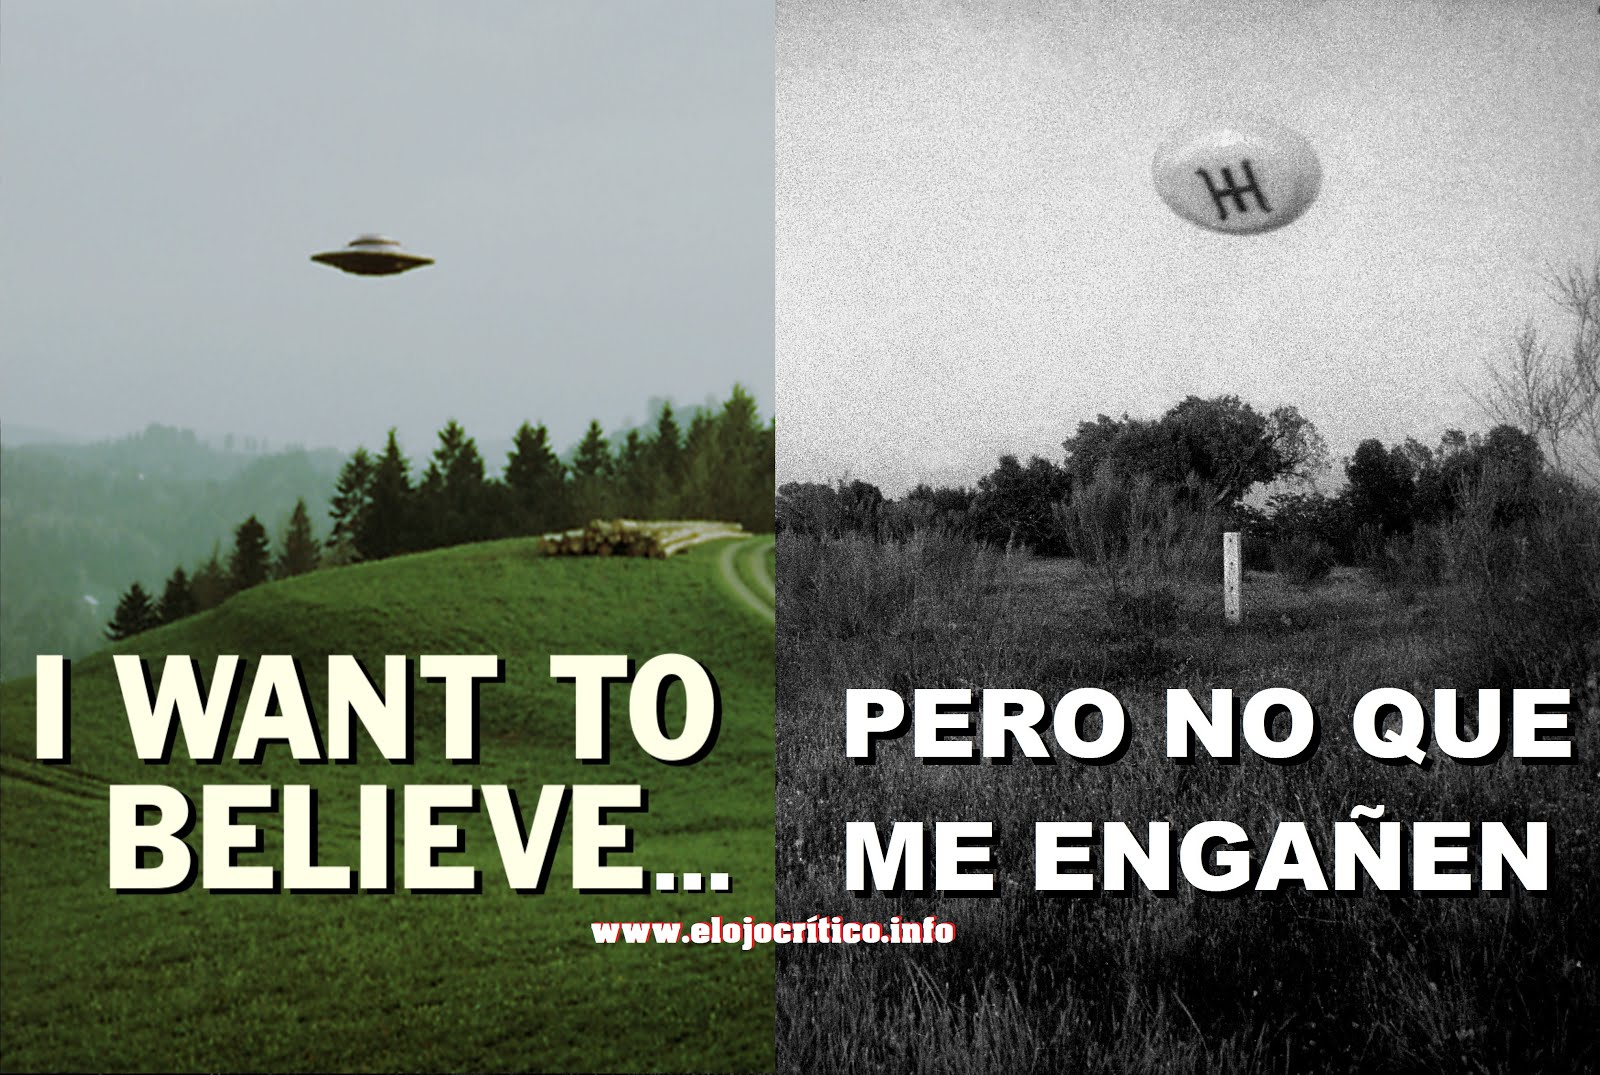 I want to belive...